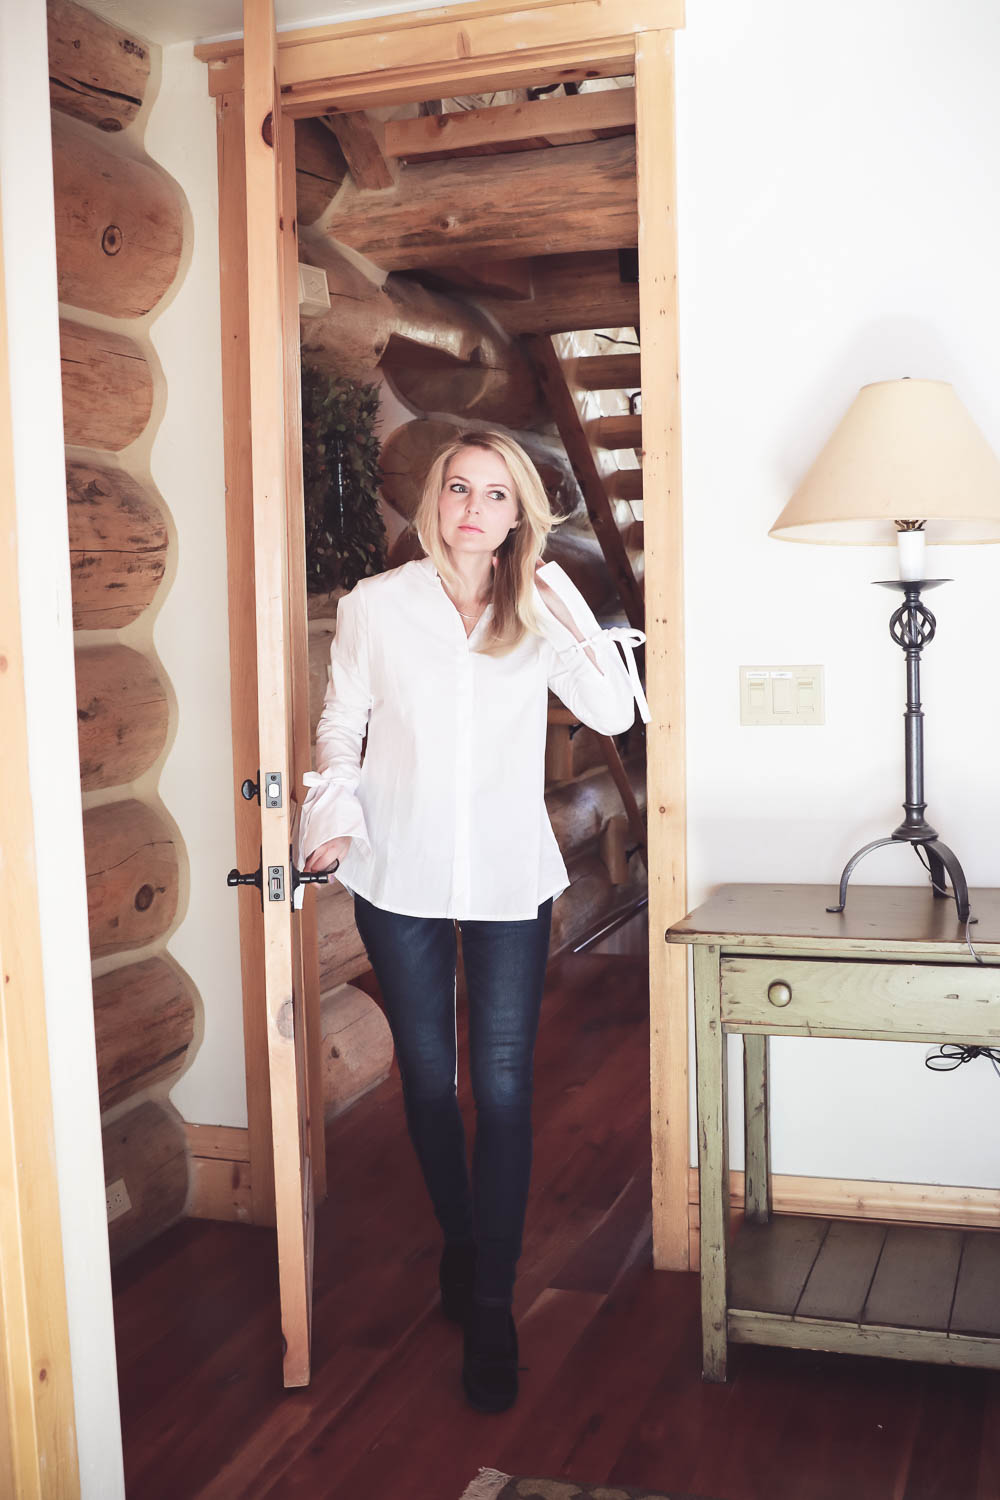 Laceup top by MLM in white button down poplin worn by Erin Busbee, fashion blogger and youtuber based in San Antonio, Texas. The laceup detail is a big fashion trend right now. Look for laceup pumps, flats, jeans, pants, tops, sweaters and jackets!